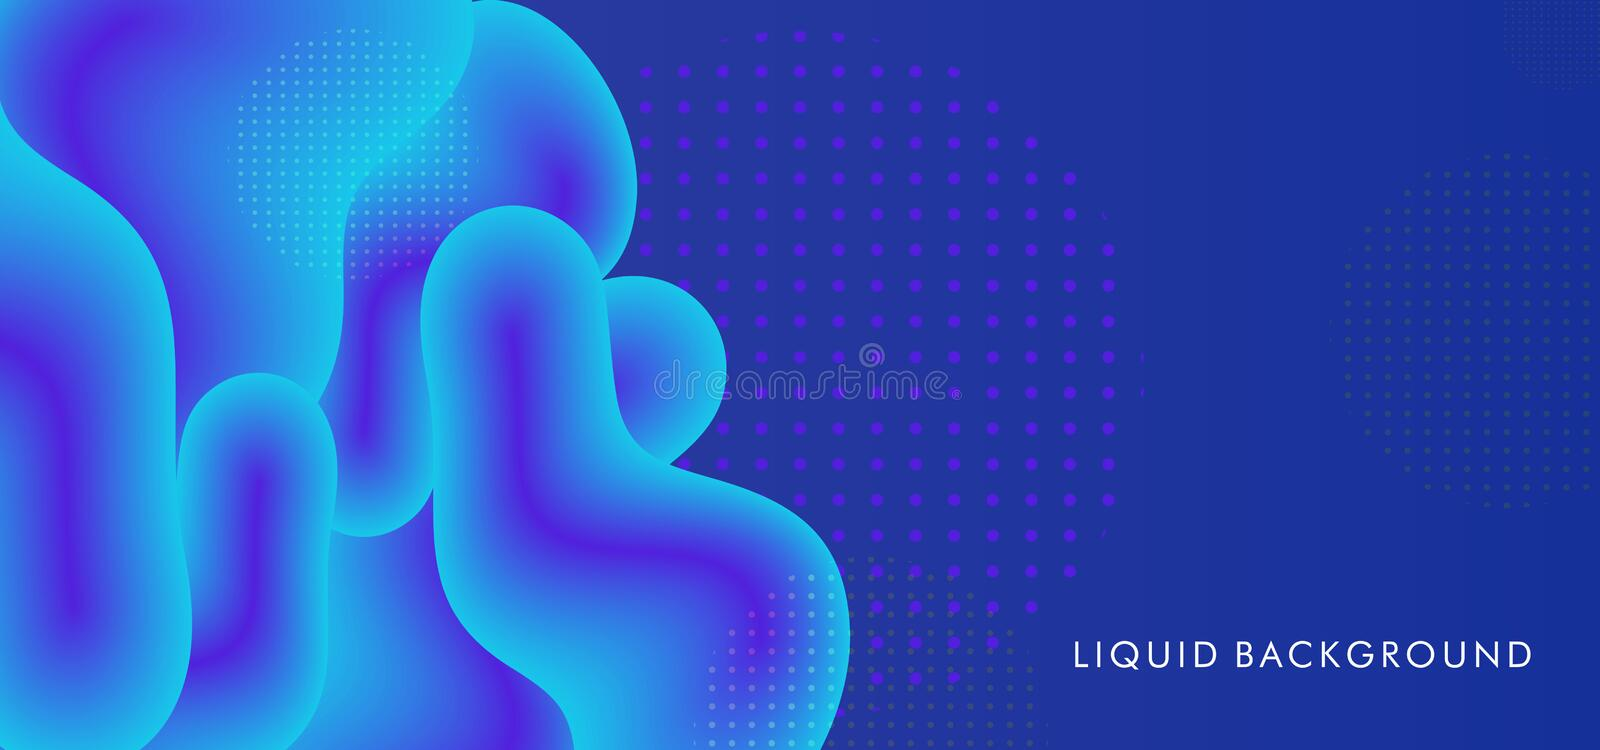 Abstract liquid background with blue colors trendy 3d fluid splash. Vector illustration wave shape cool colors theme stock illustration